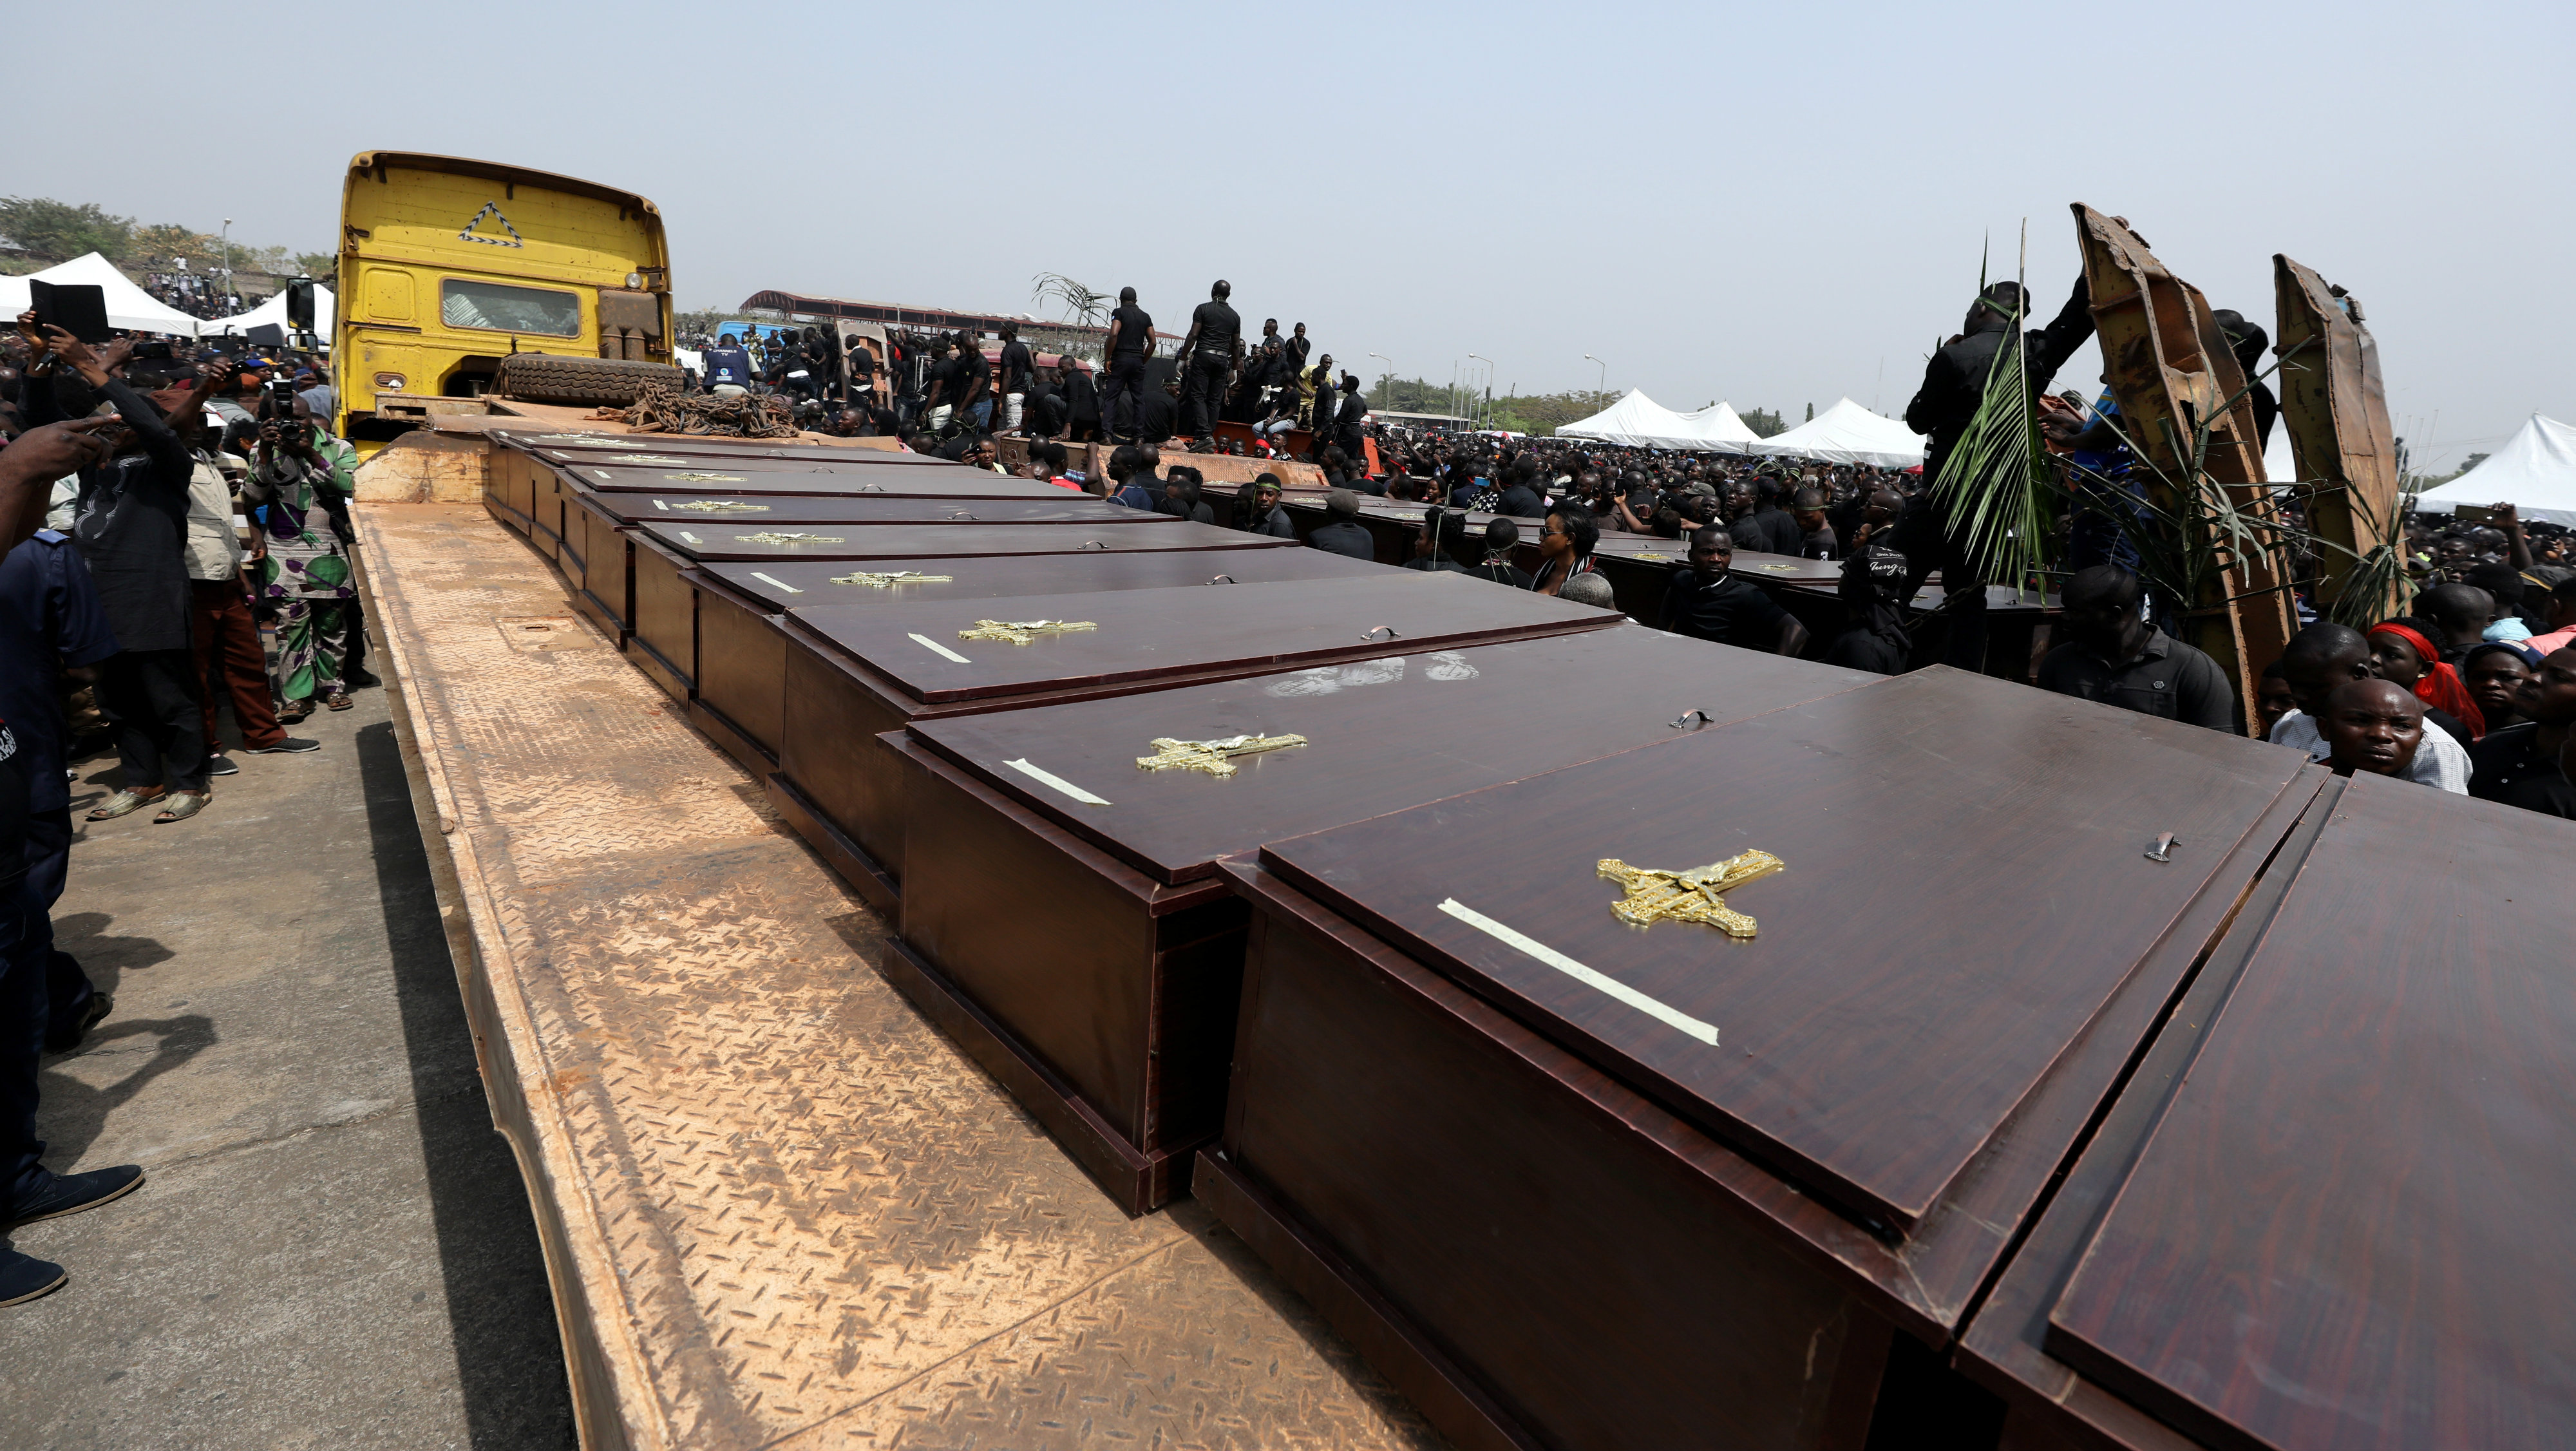 A truck carries the coffins of people killed by the Fulani herdsmen at the IBB square in Makurdi, Nigeria January 11, 2018.